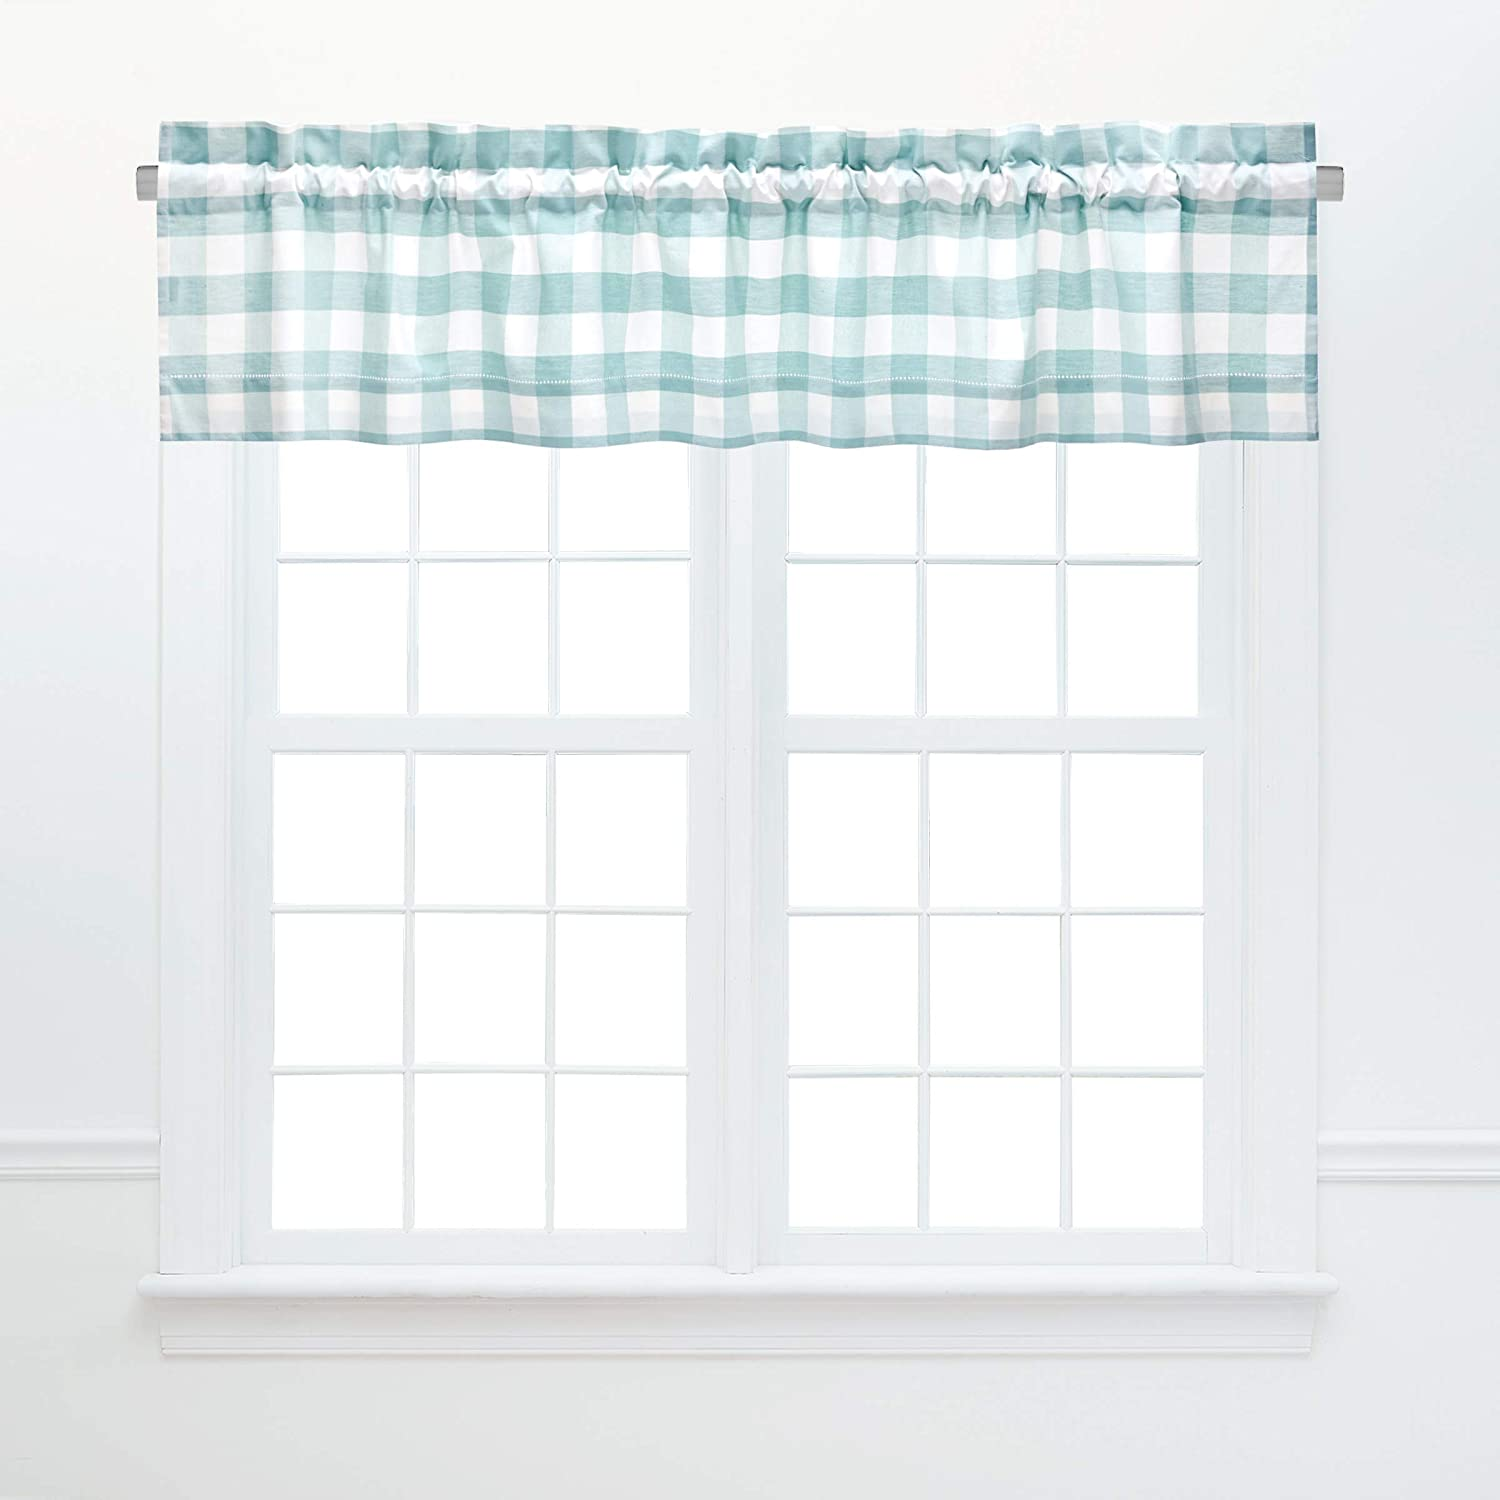 C&F Home Franklin Sea Glass Valance Checkered Cotton Curtains for Window Living Dining Room Bedroom Bathroom Kitchen Valance Sea Glass